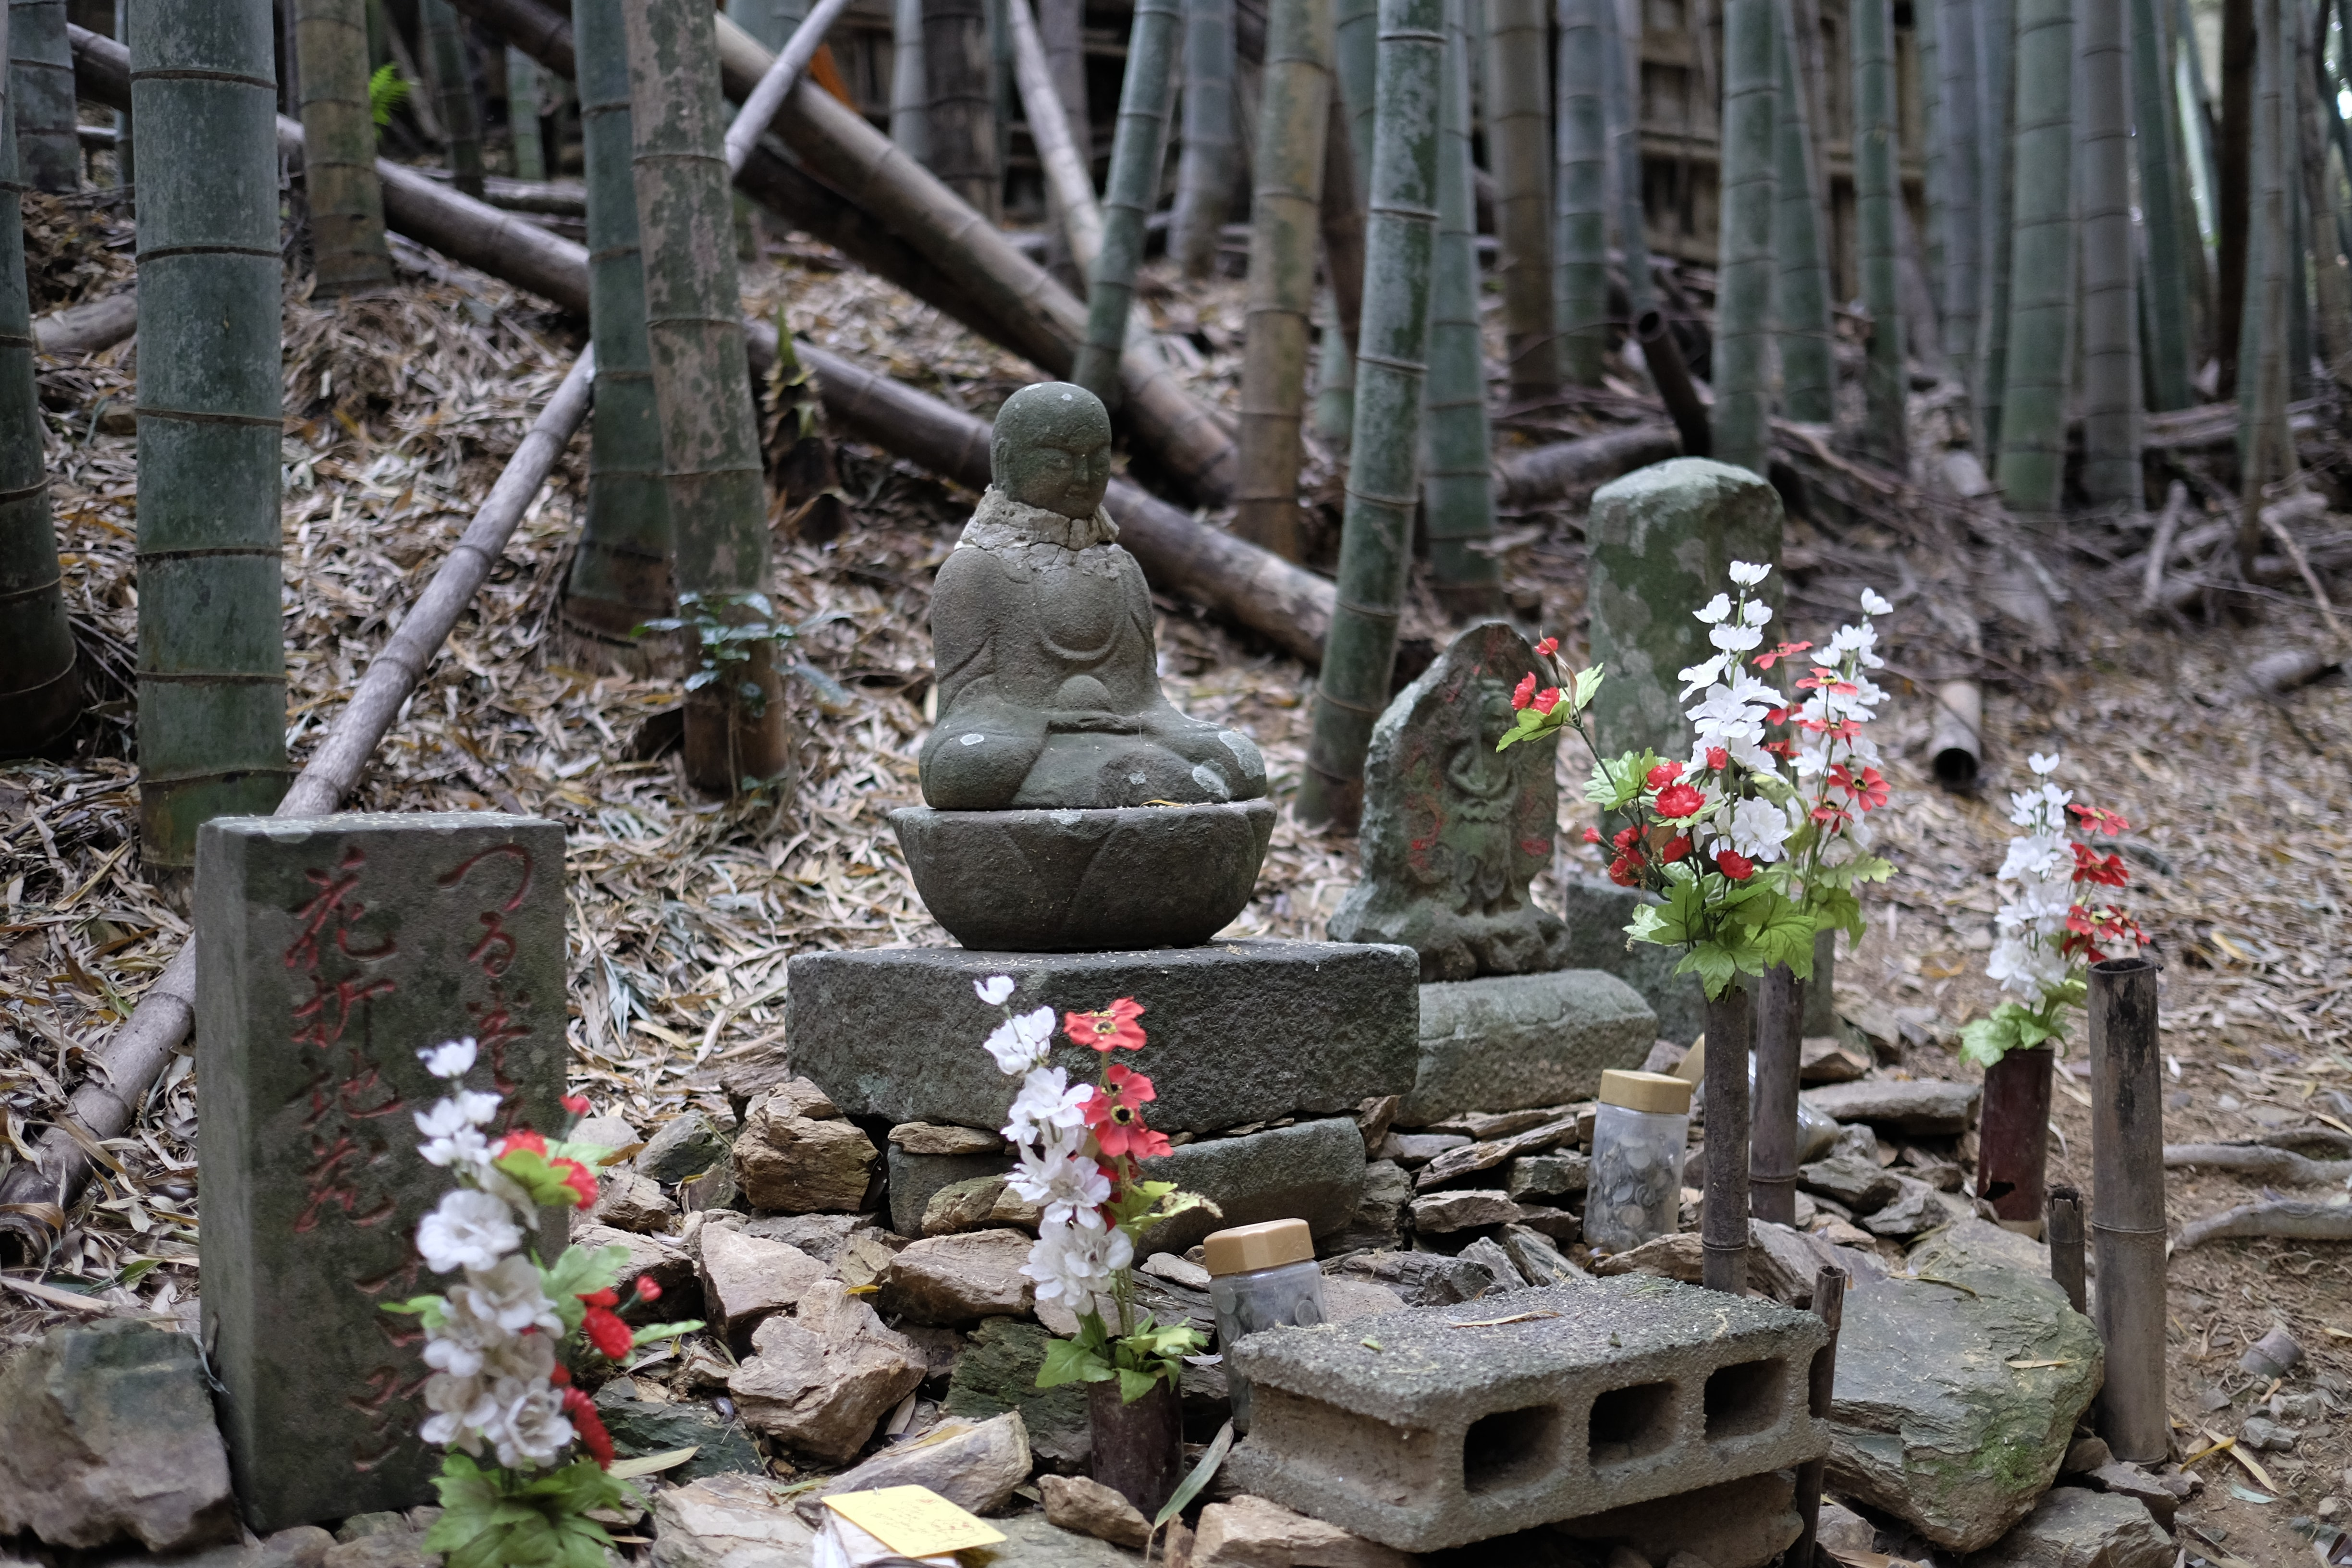 Statues in bamboo groove